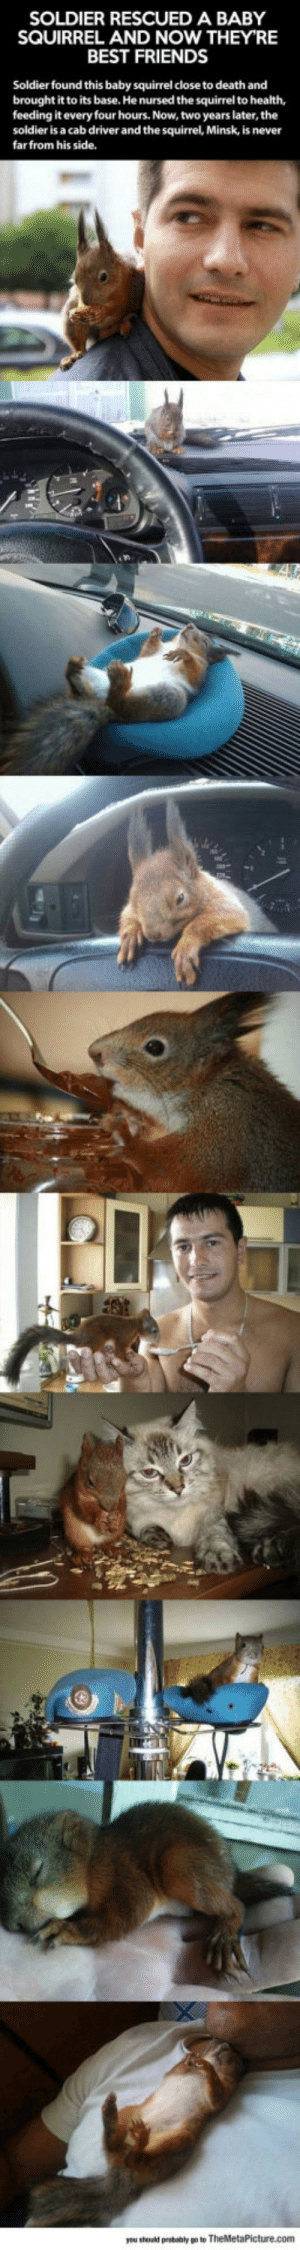 lolzandtrollz:  Just A Soldier And His Best Friend: SOLDIER RESCUED A BABY  SQUIRREL AND NOW THEY'RE  BEST FRIENDS  Soldier found this baby squirrel close to death and  brought it to its base. He nursed the squirrel to health,  feeding it every four hours. Now, two years later, the  soldier is a cab driver and the squirrel, Minsk, is never  farfrom his side. lolzandtrollz:  Just A Soldier And His Best Friend